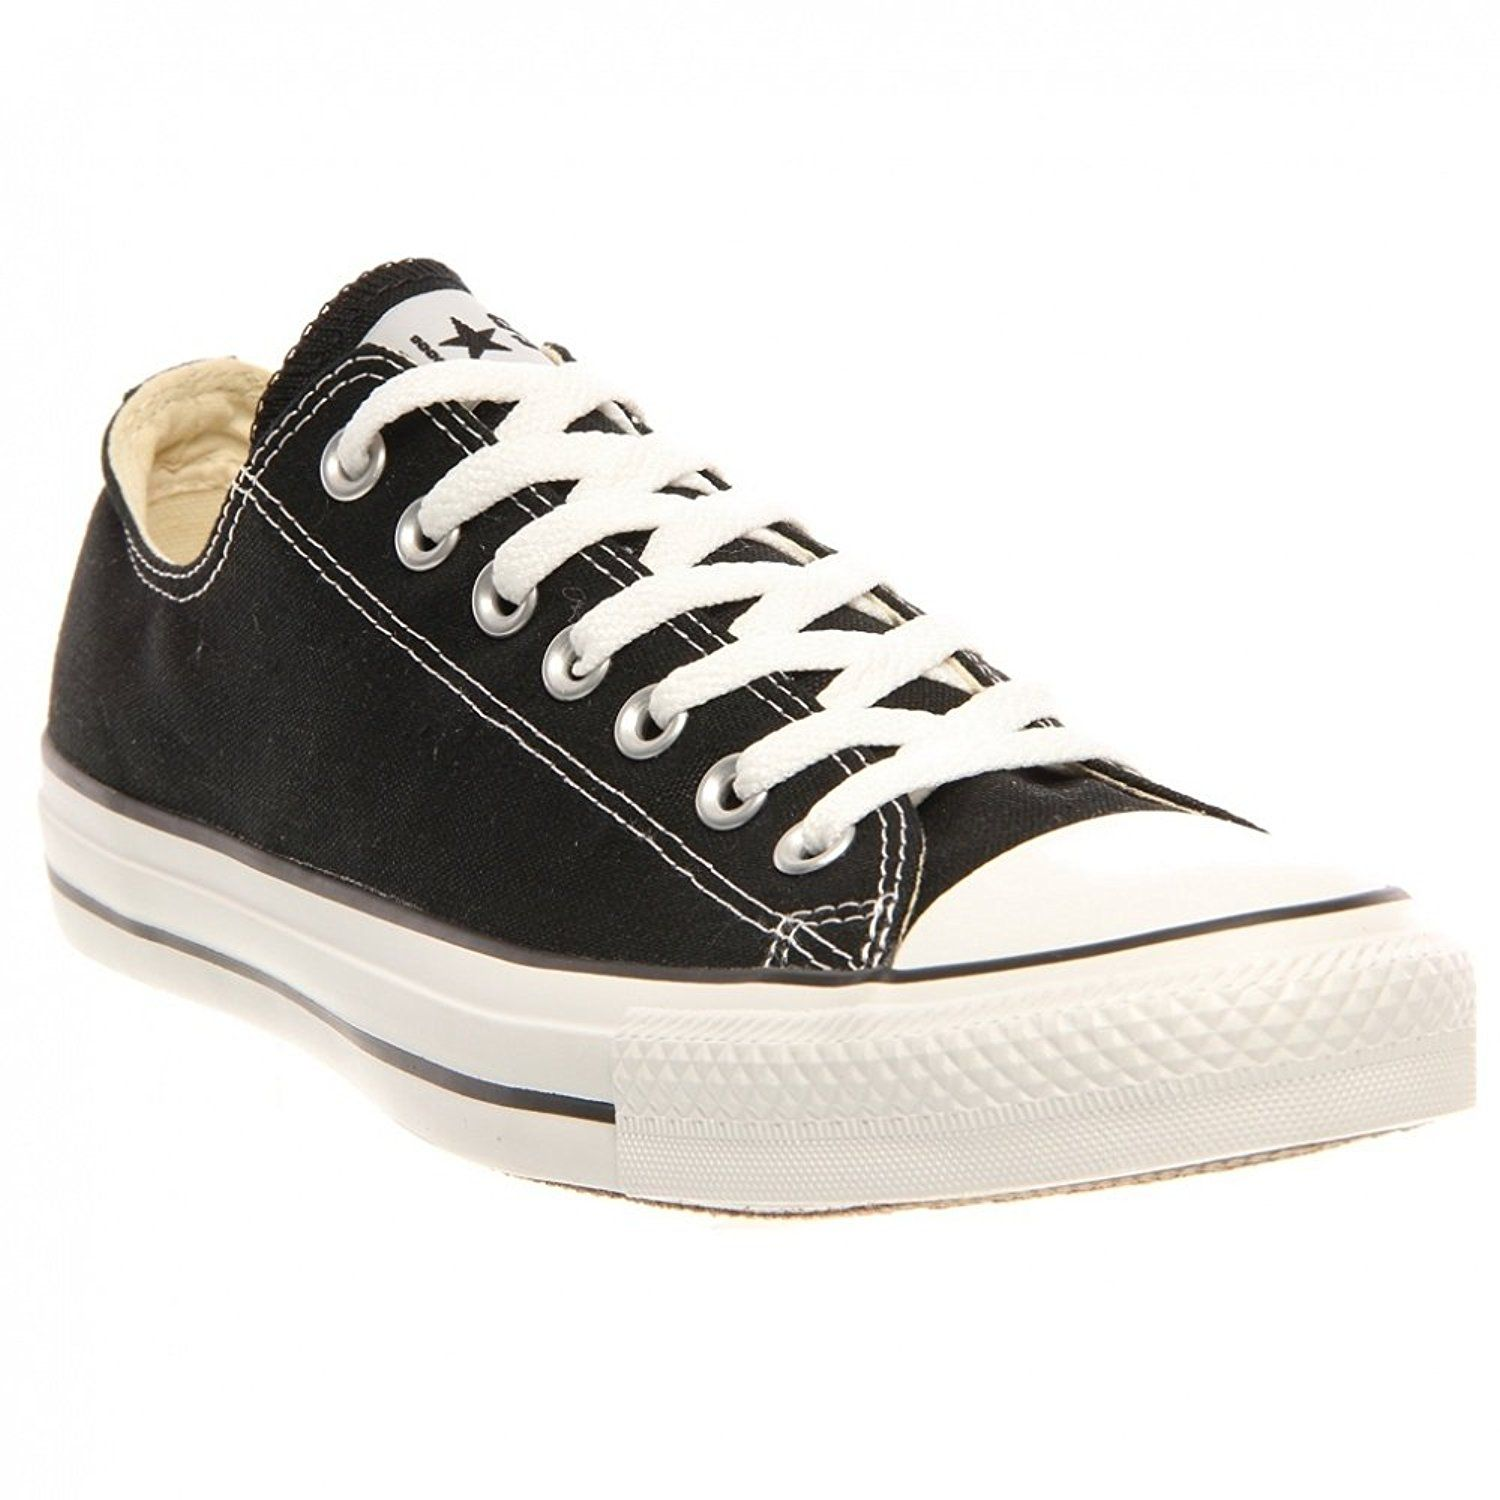 1b67f2e9d2b932 Converse Chuck Taylor All Star OX Low Top Sneakers M9166 Black 3 M US    Details can be found by clicking on the image.